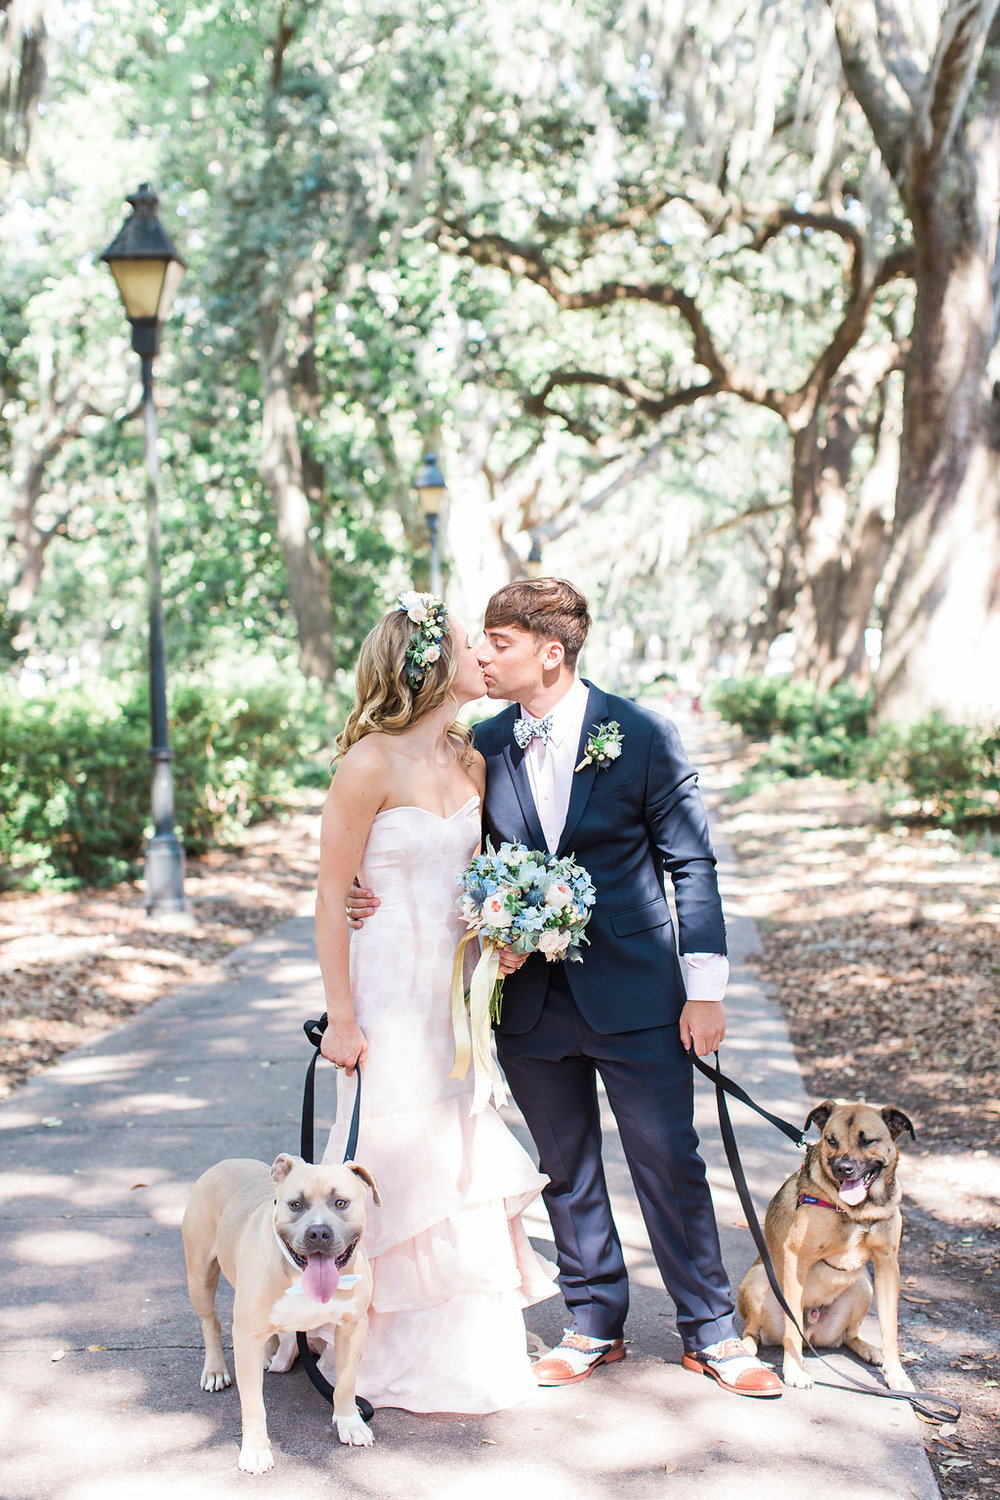 eve-pat-apt-b-photography-Jacklynn-bridal-blush-wedding-dress-polka-dot-wedding-dress-ivory-and-beau-bridal-boutique-savannah-wedding-harry-potter-wedding-savannah-bridal-boutique-savannah-wedding-planner-urban-poppy-florist-soho-south-cafe-wedding-16.JPG